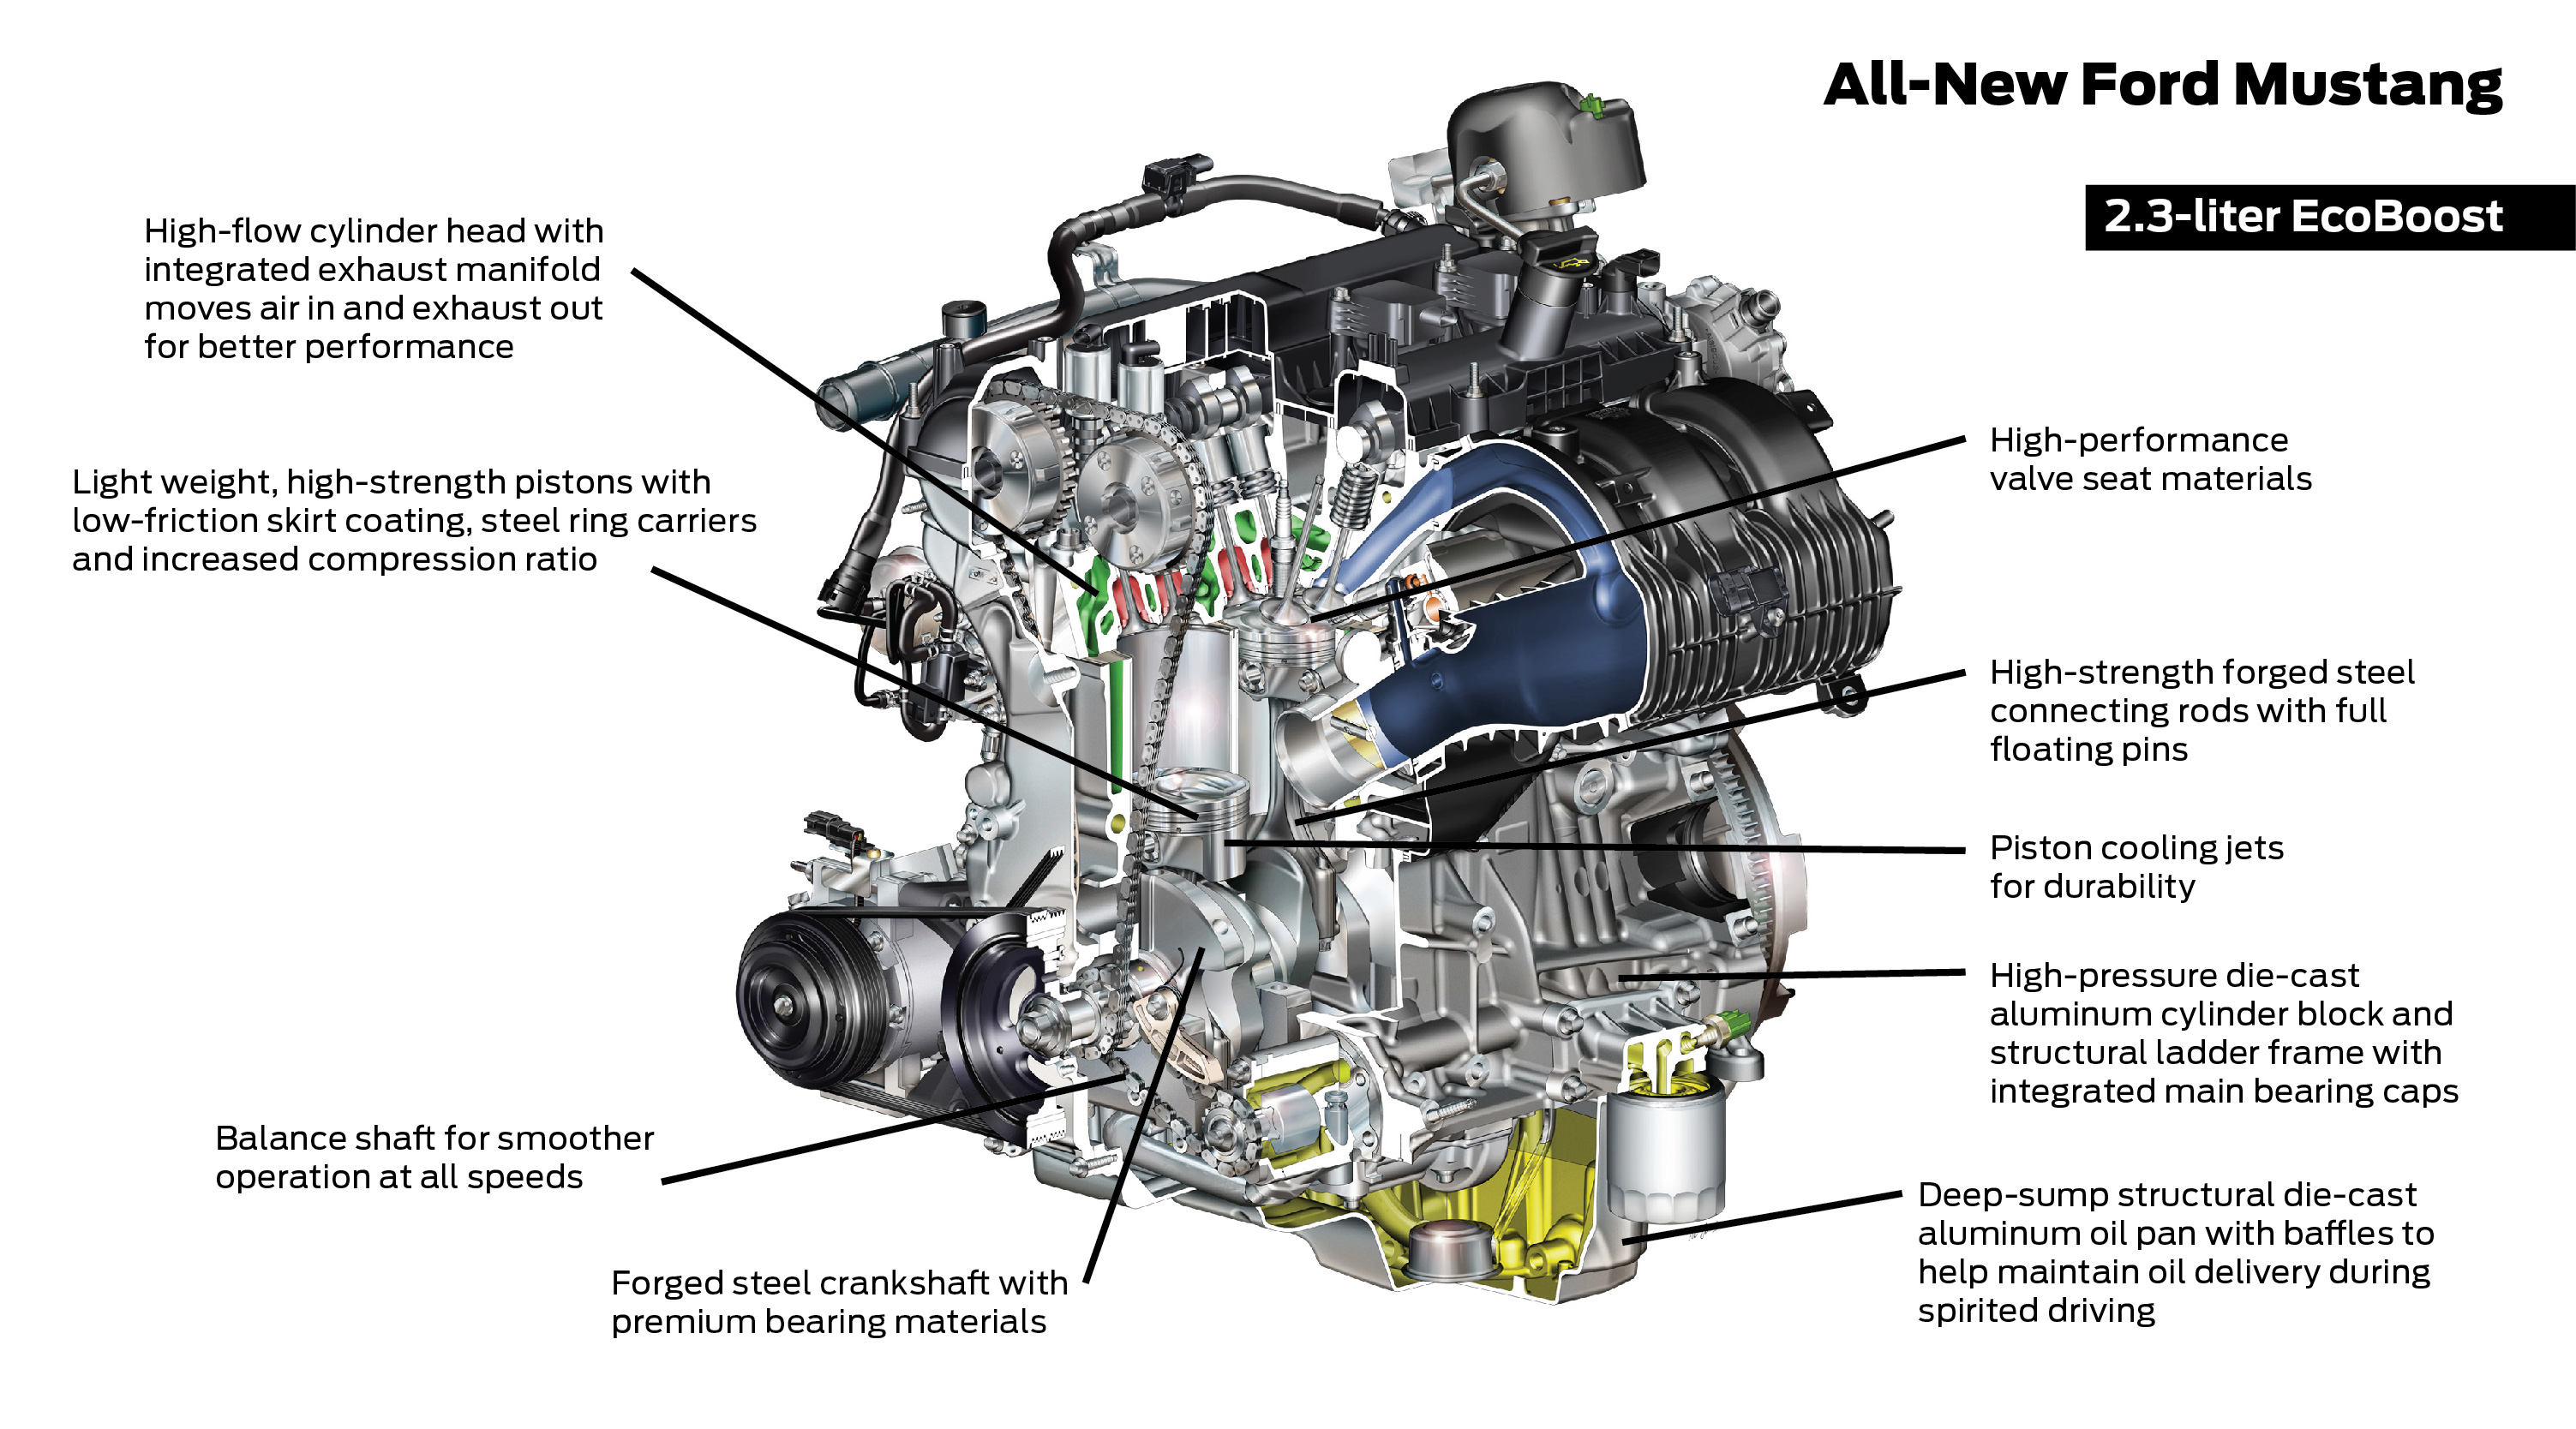 Basic 4 Cylinder Engine Diagram Not Lossing Wiring Omc 3 A Simple Guide To The 2015 Ford Mustang 2 Liter Ecoboost Rh Autoevolution Com Chevy Performance Engines